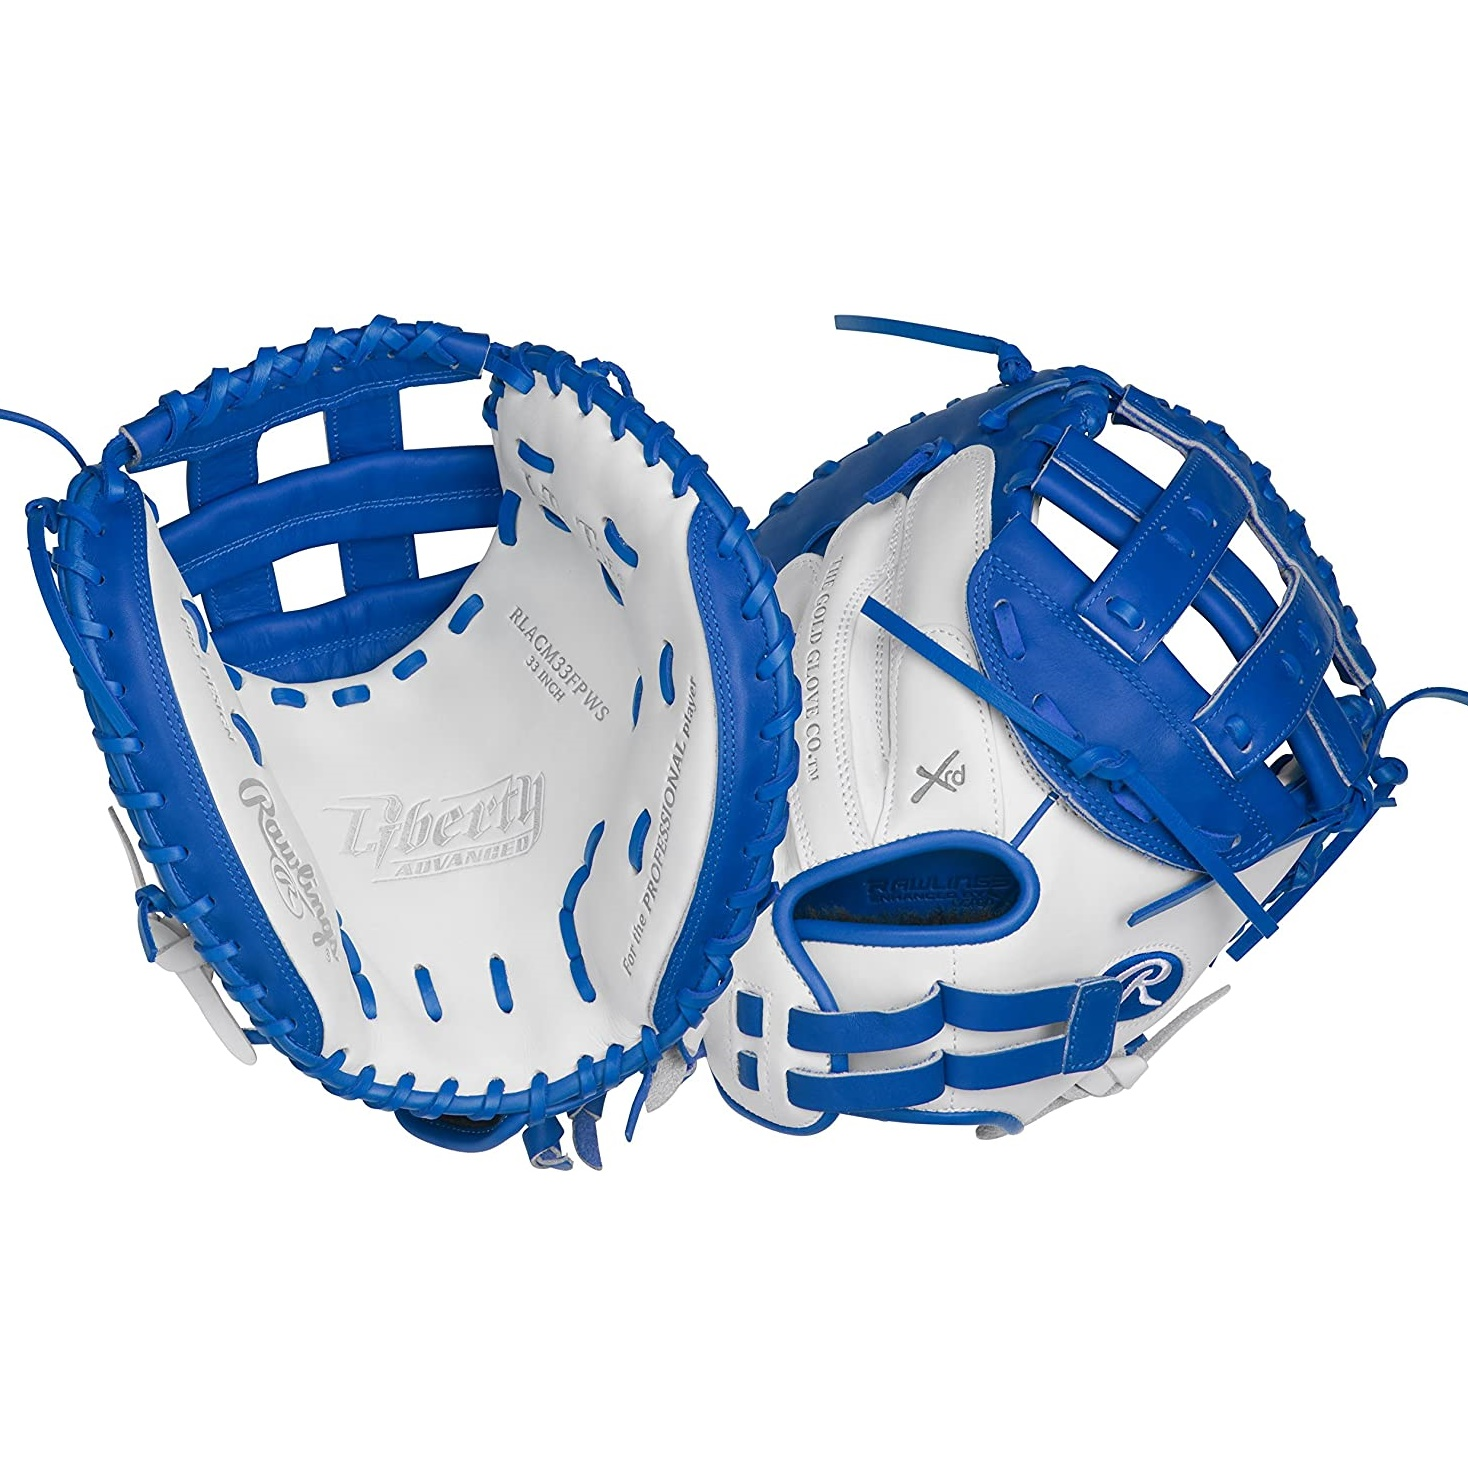 rawlings-liberty-advanced-color-33-fastpitch-catchers-mitt-right-hand-throw RLACM33FPR-RightHandThrow   The Rawlings Liberty Advanced Color Series 33-Inch catchers mitt provides unmatched